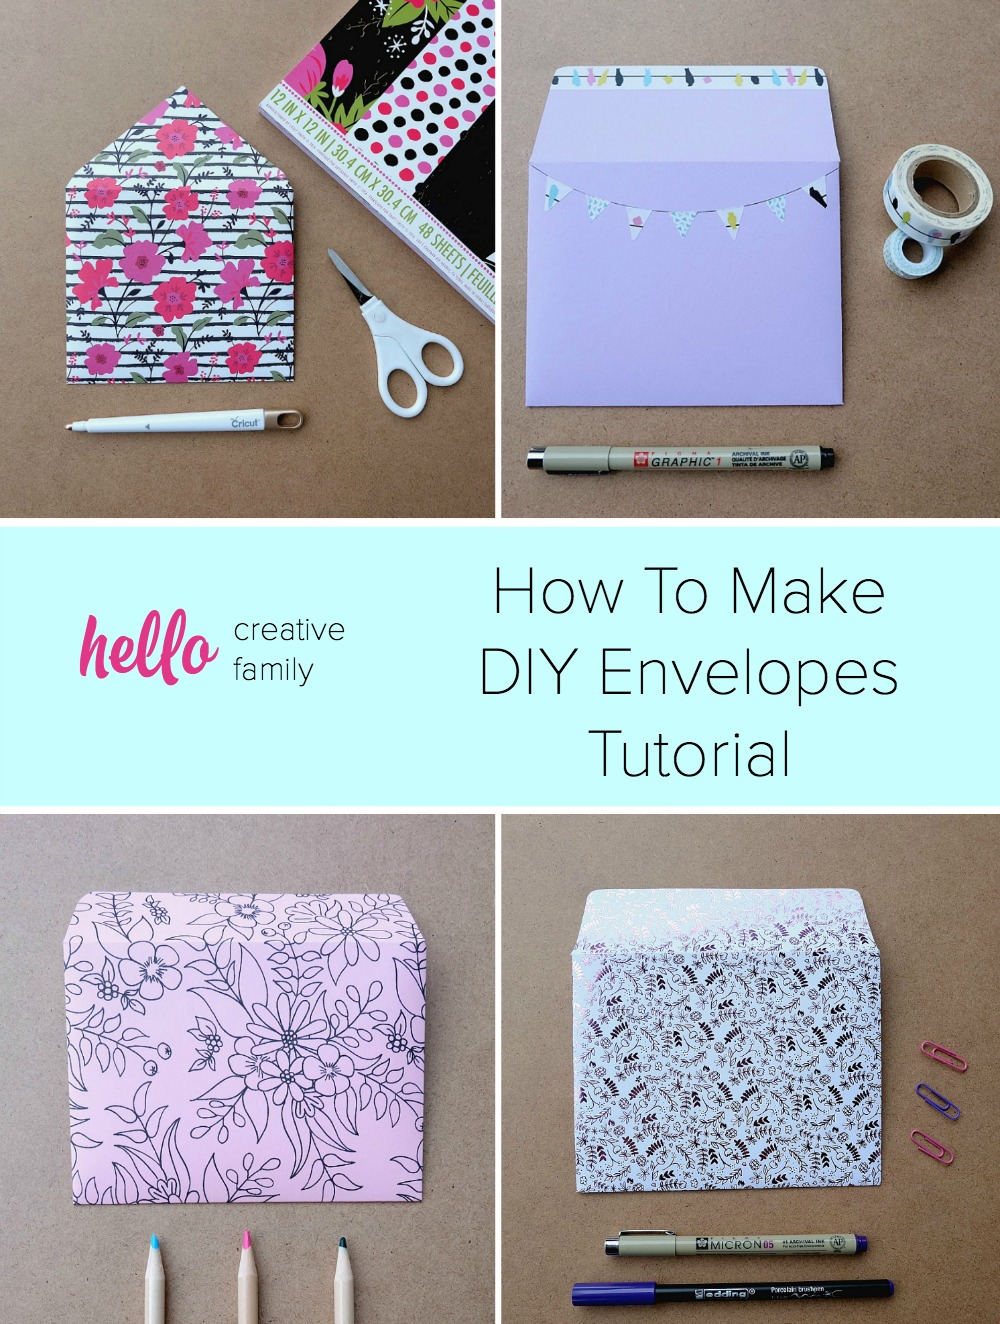 You'll want to hang onto old Christmas and Birthday card envelopes after reading this post! Upcycle old envelopes into envelope templates! Learn How To Make DIY Envelopes in minutes using scrapbooking paper and cardstock with this easy tutorial!